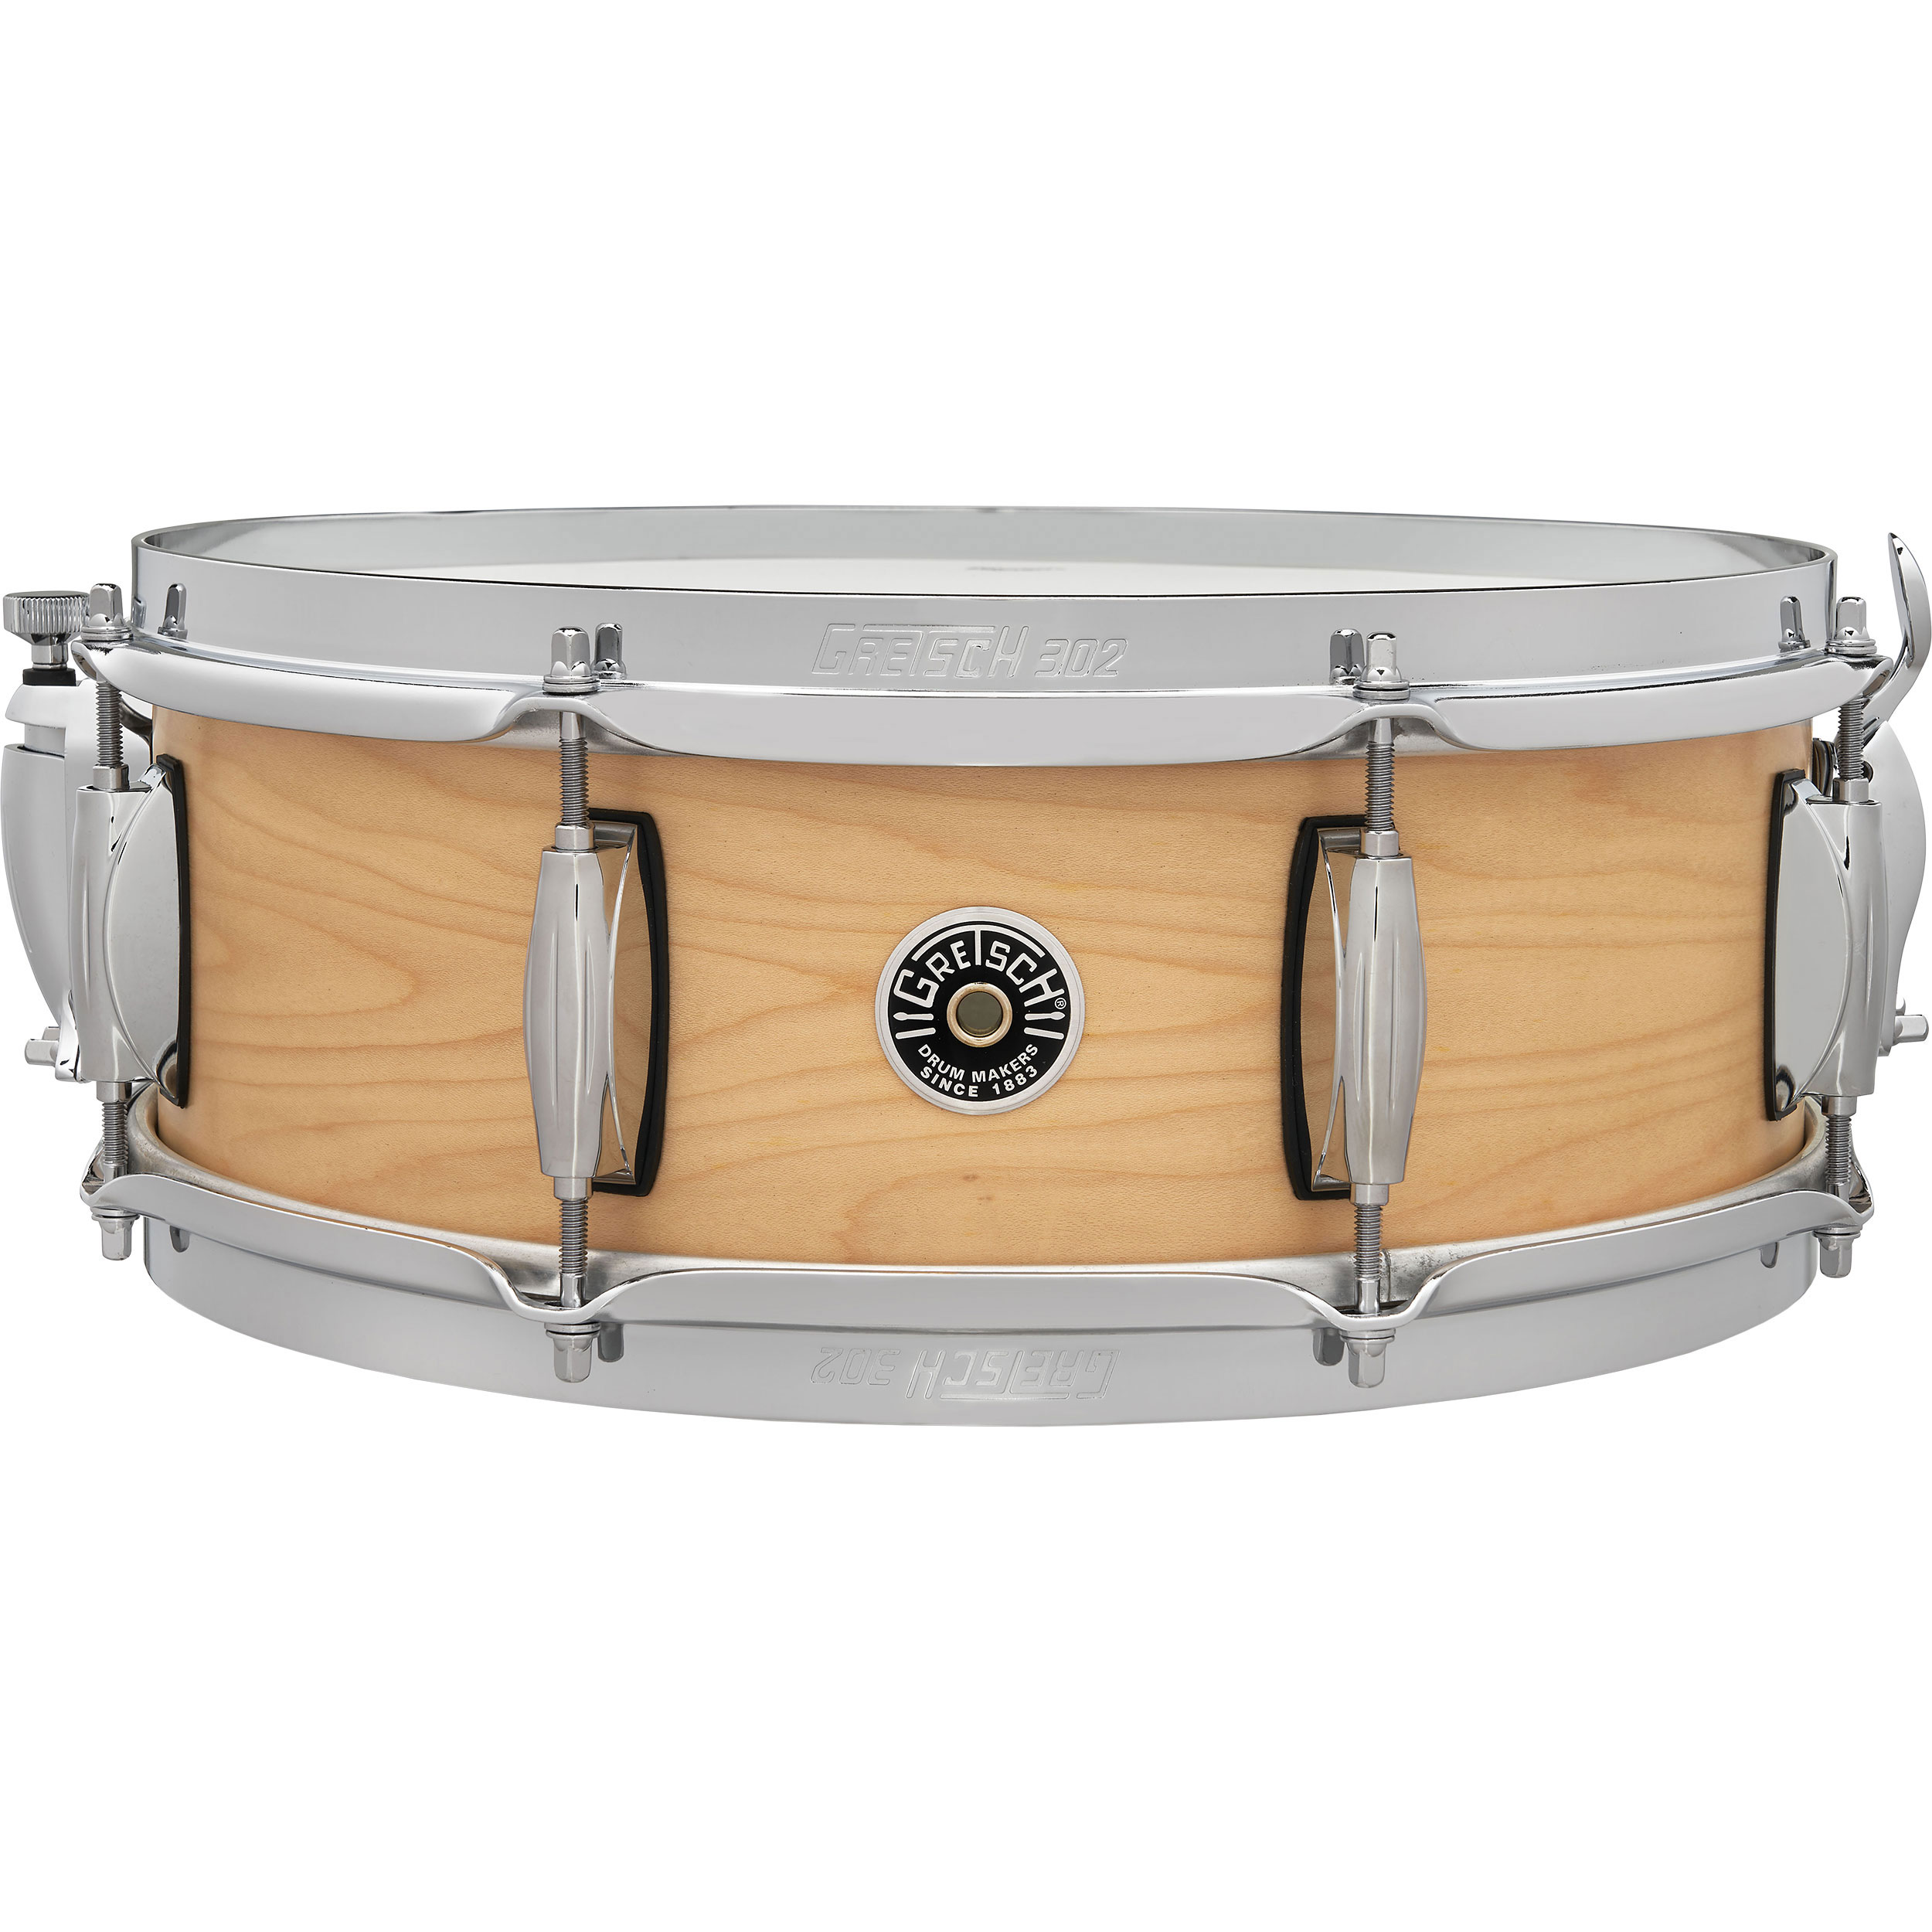 "Gretsch 6.5 x 14"" Brooklyn Straight Satin Snare Drum"